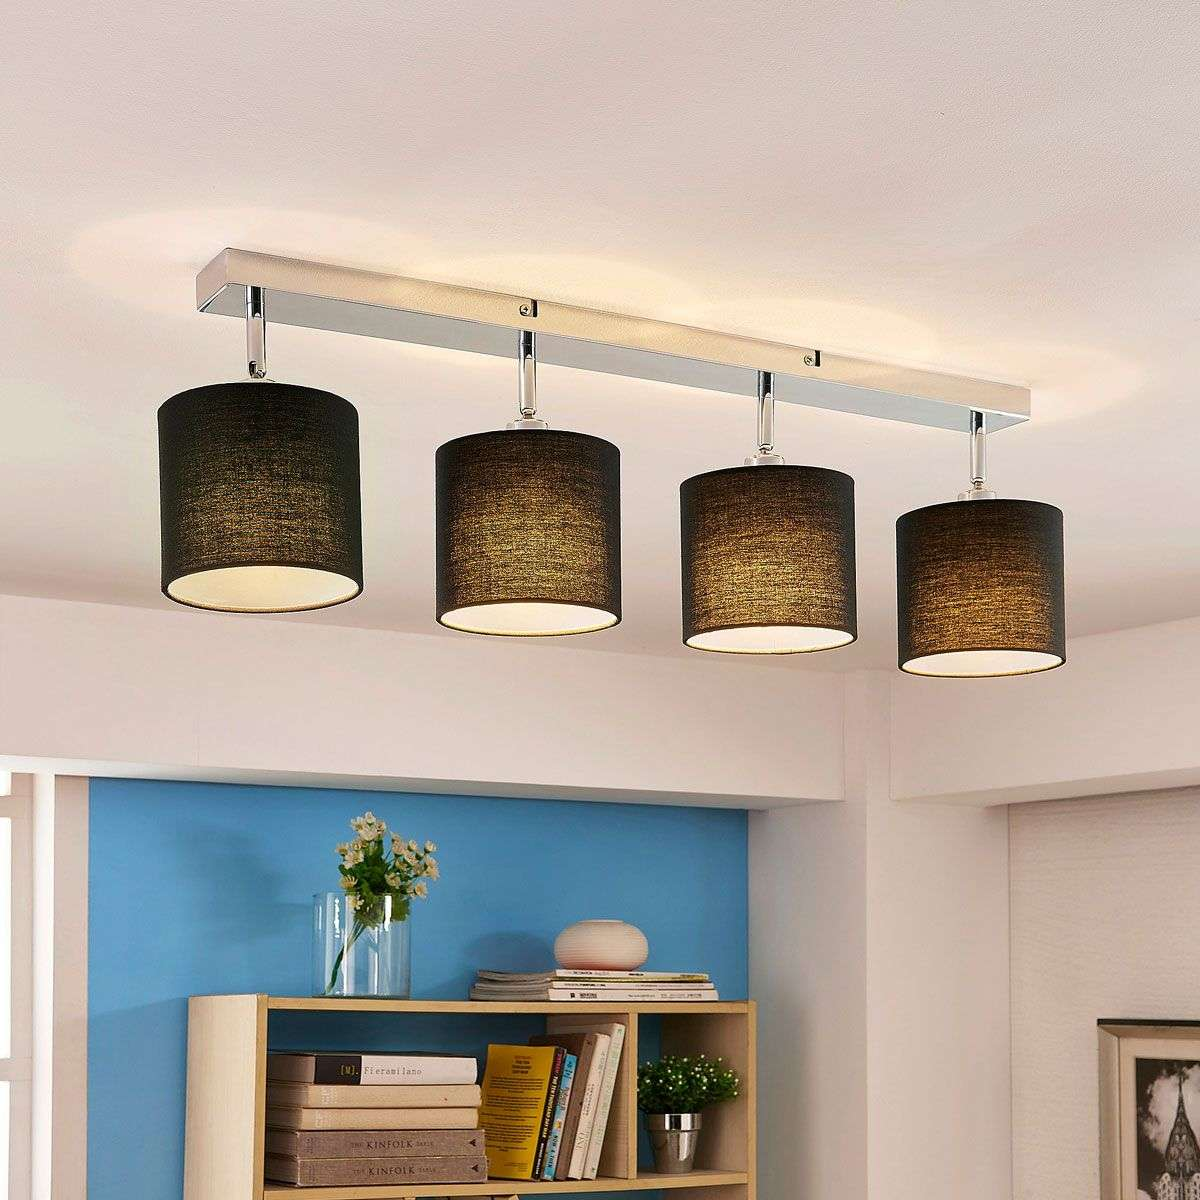 Ceiling lamp mairi with black lampshades and leds lights ceiling lamp mairi with black lampshades and leds 9621109 31 aloadofball Image collections